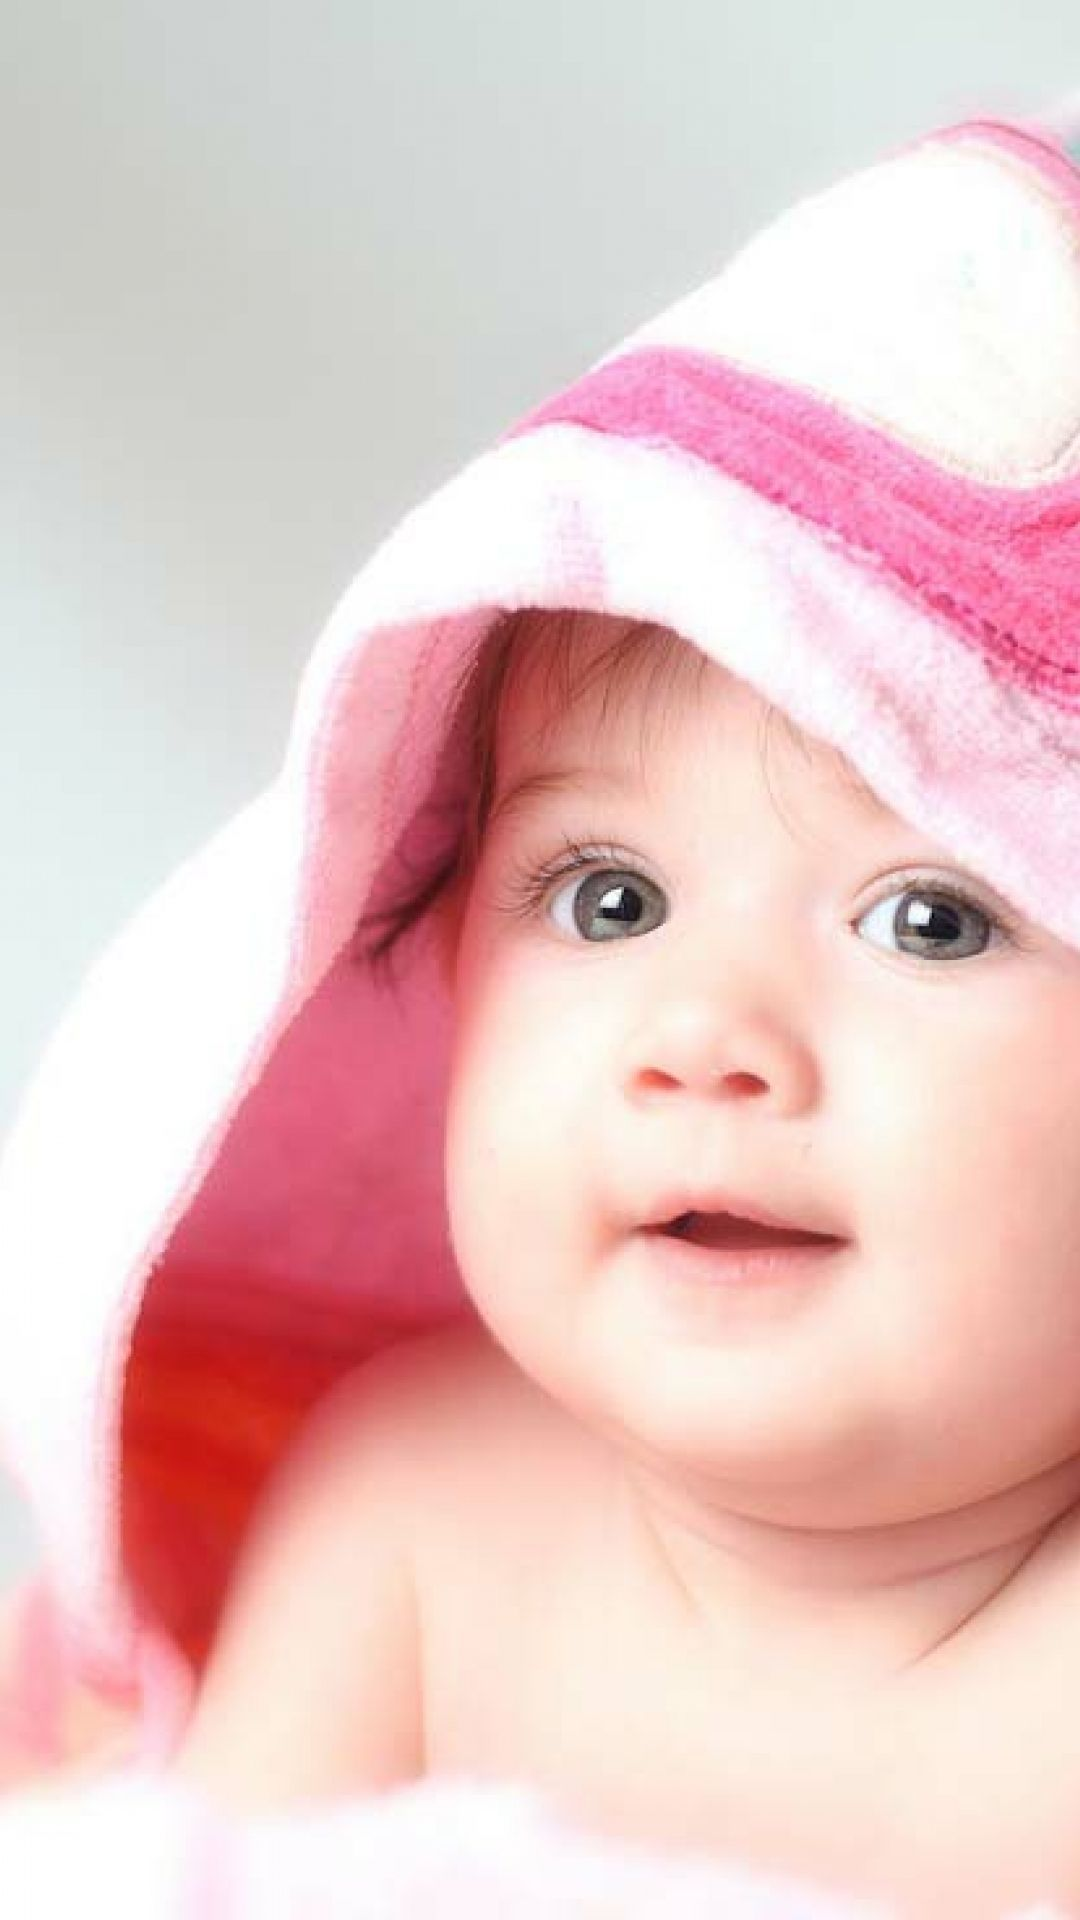 Beautiful Baby Hd Wallpapers Top Free Beautiful Baby Hd Backgrounds Wallpaperaccess